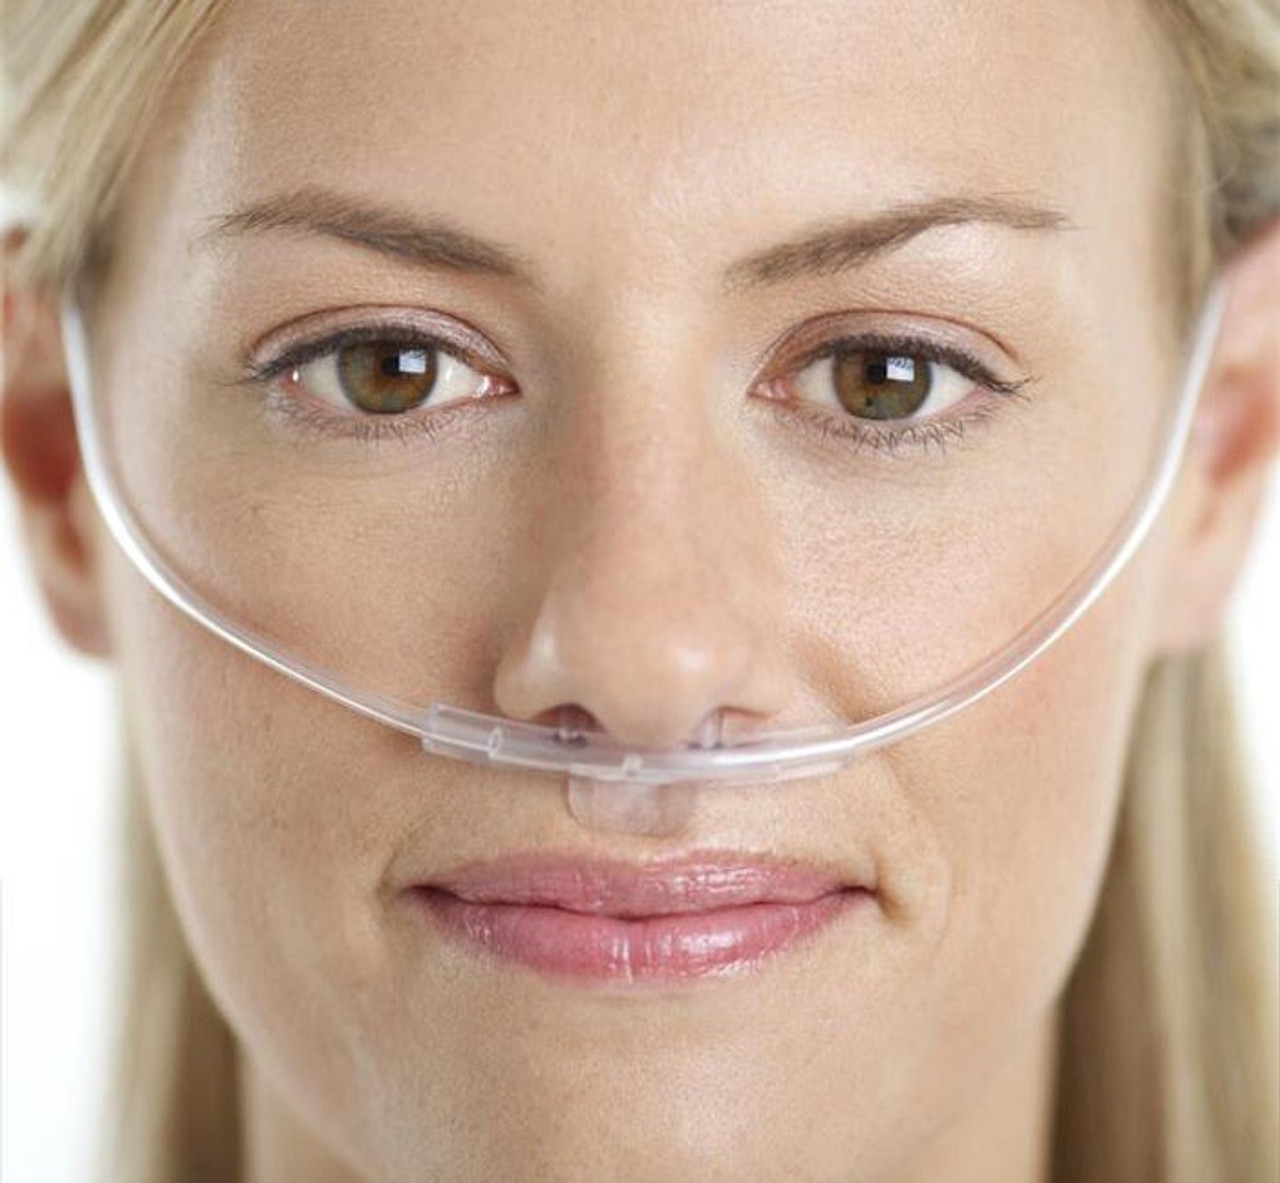 nasal oxygen tube Cheaper Than Retail Price> Buy Clothing, Accessories and  lifestyle products for women & men -